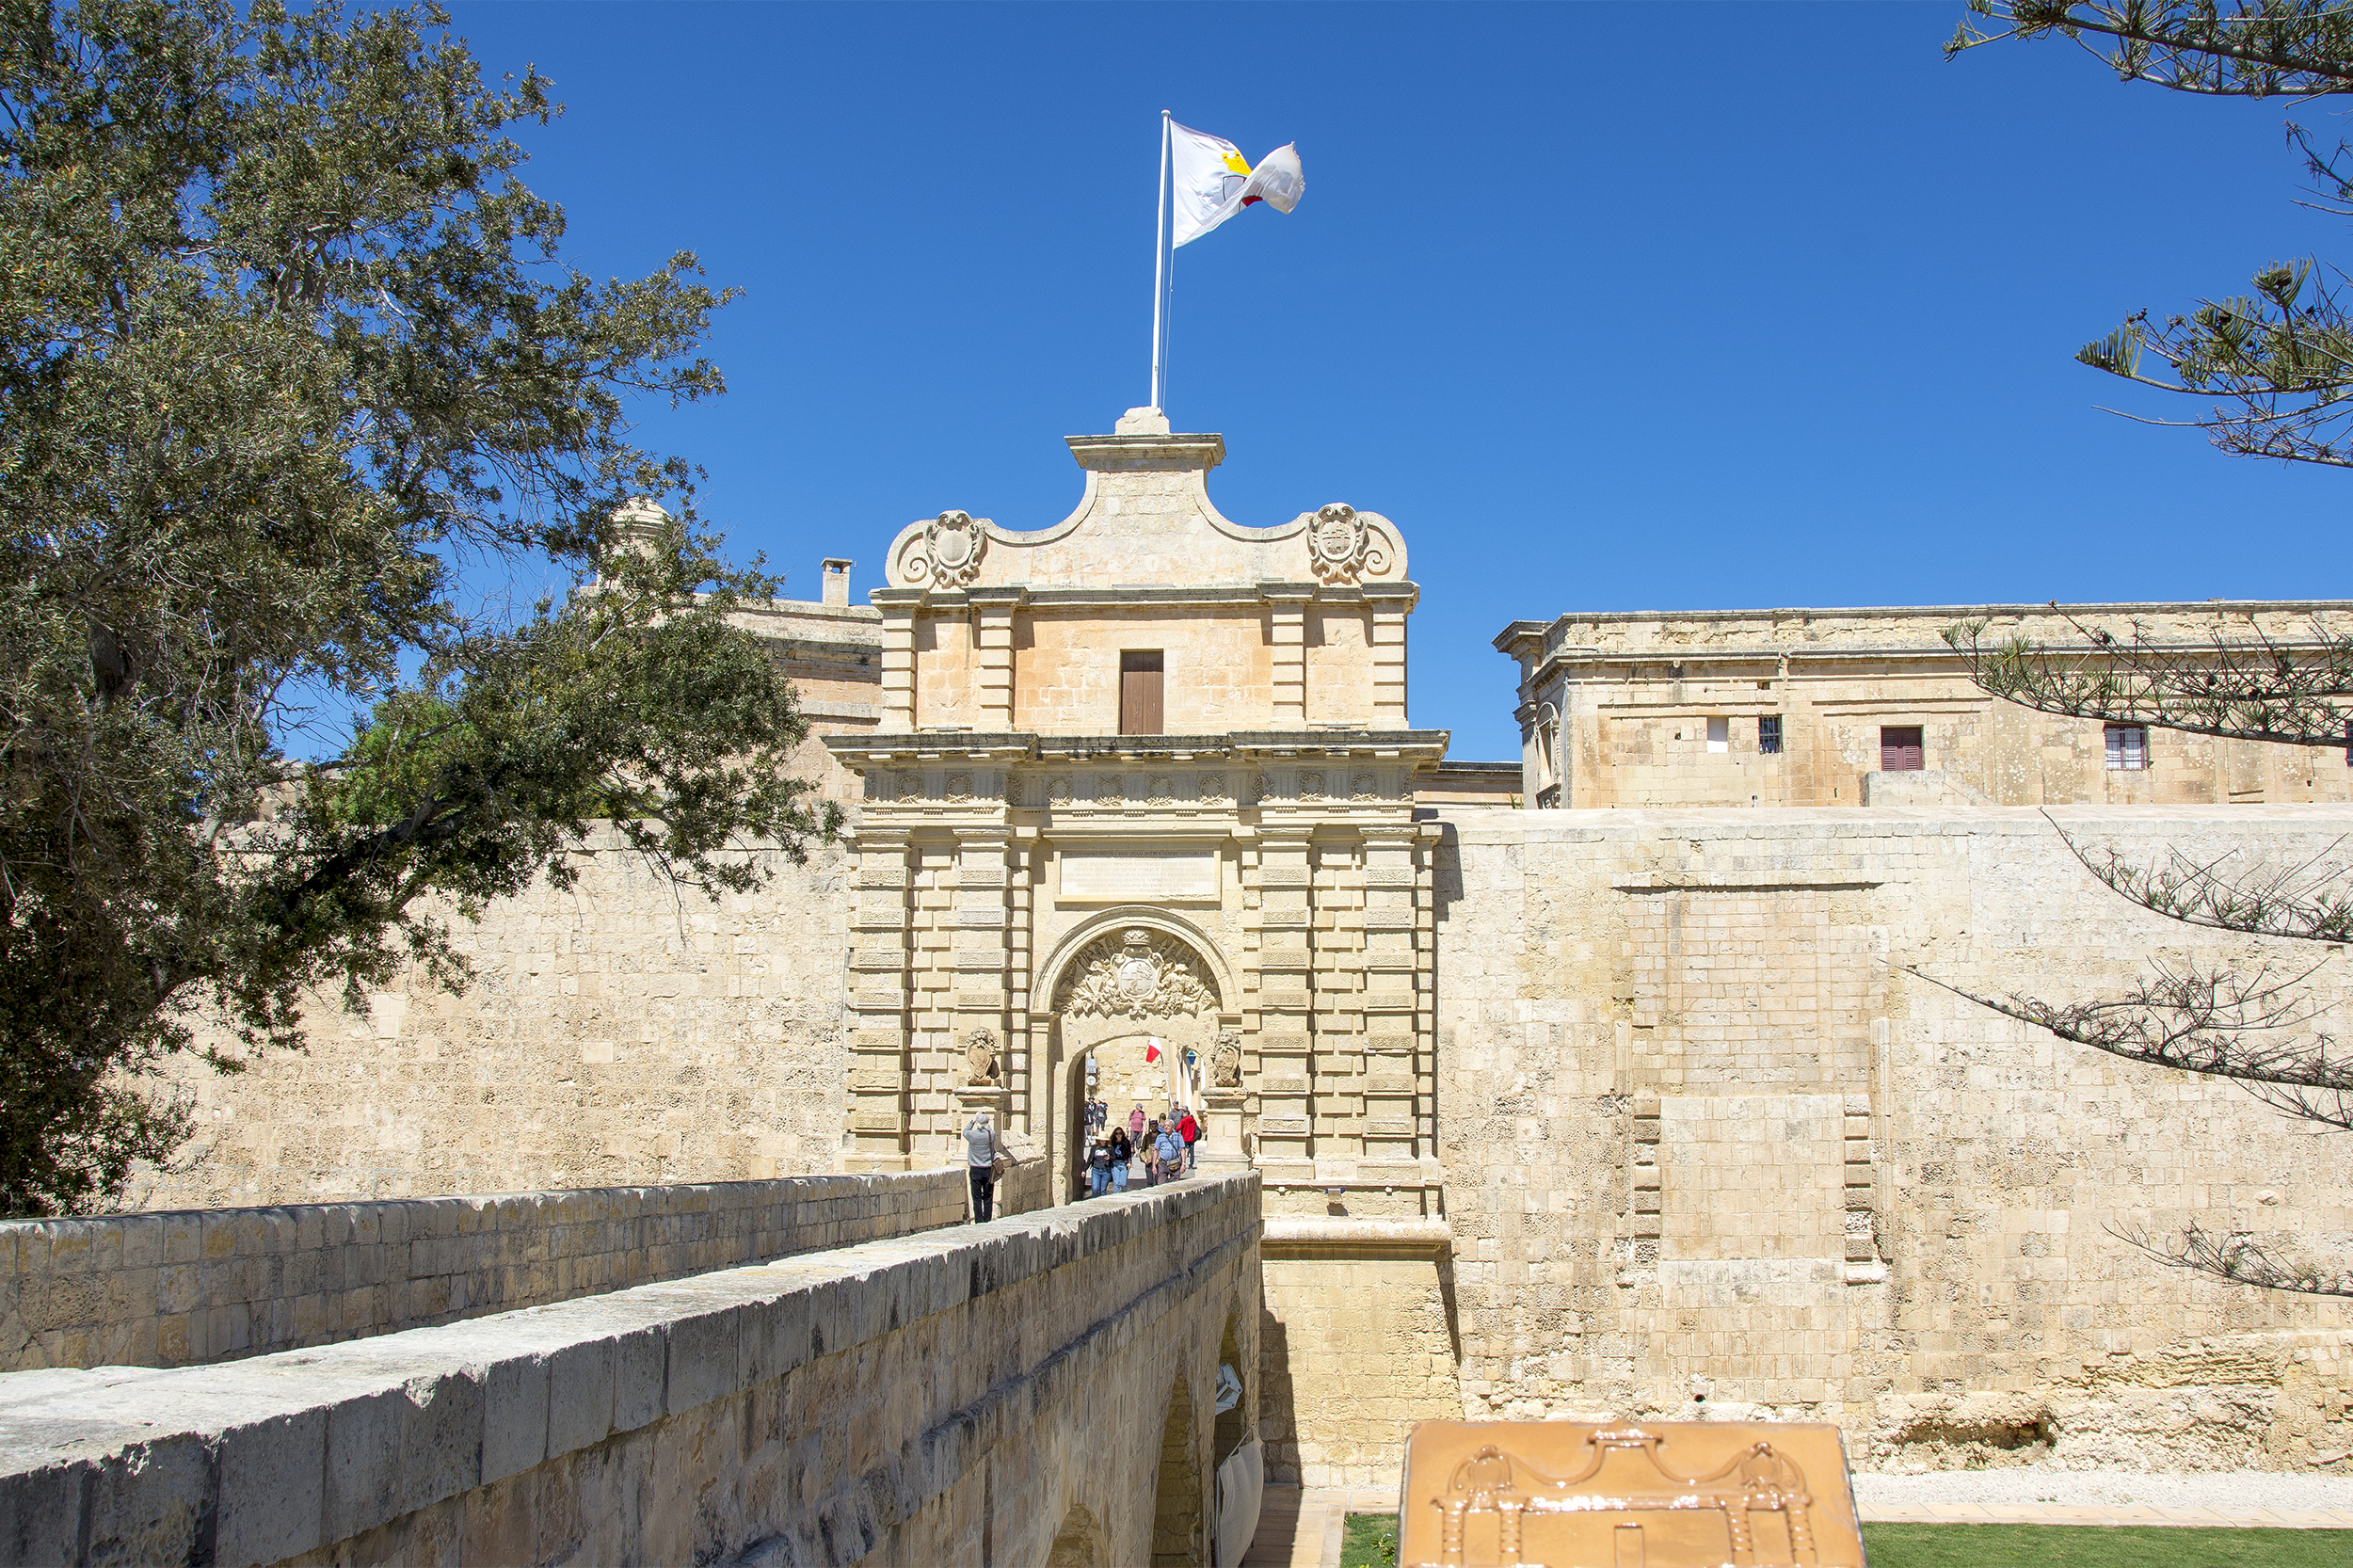 Mdina Stadsport Kings Landing Game of Thrones